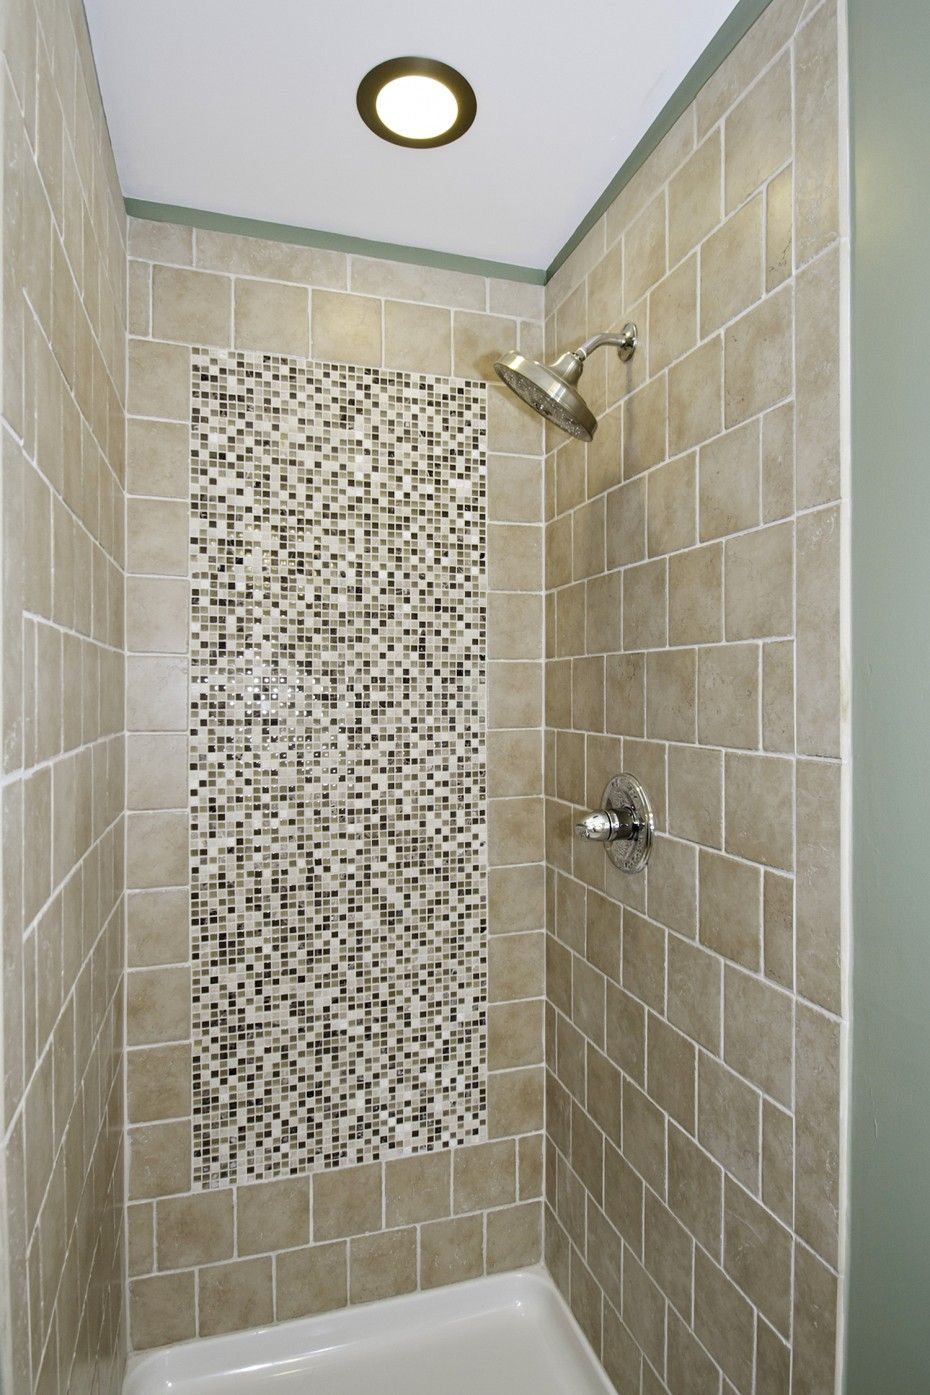 Bathroom inspiration superb stand up shower with for Stand up shower ideas